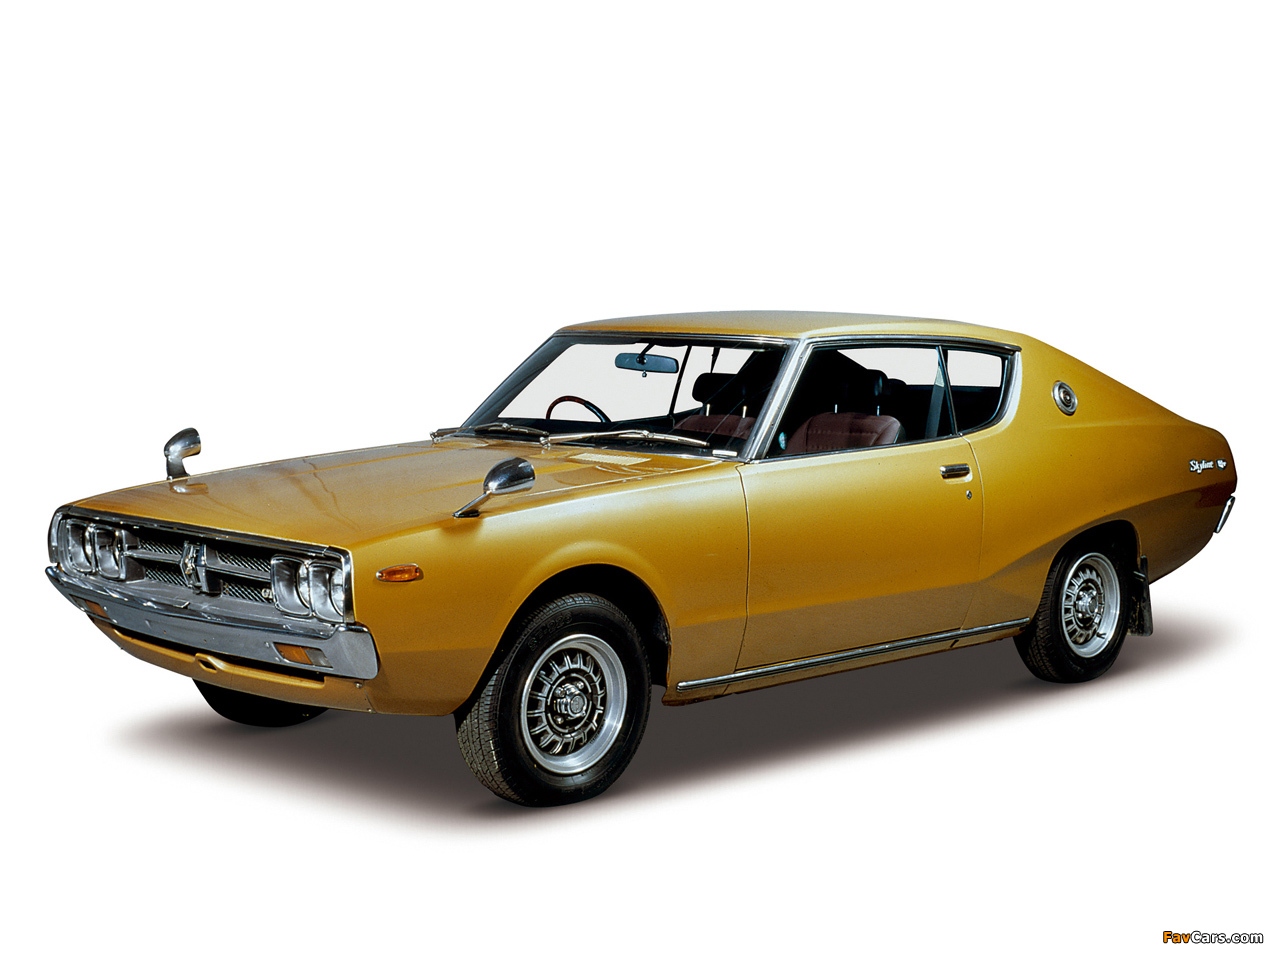 Of nissan skyline 2000gt x coupe kgc111 197577 images of nissan skyline 2000gt x coupe kgc111 197577 vanachro Choice Image